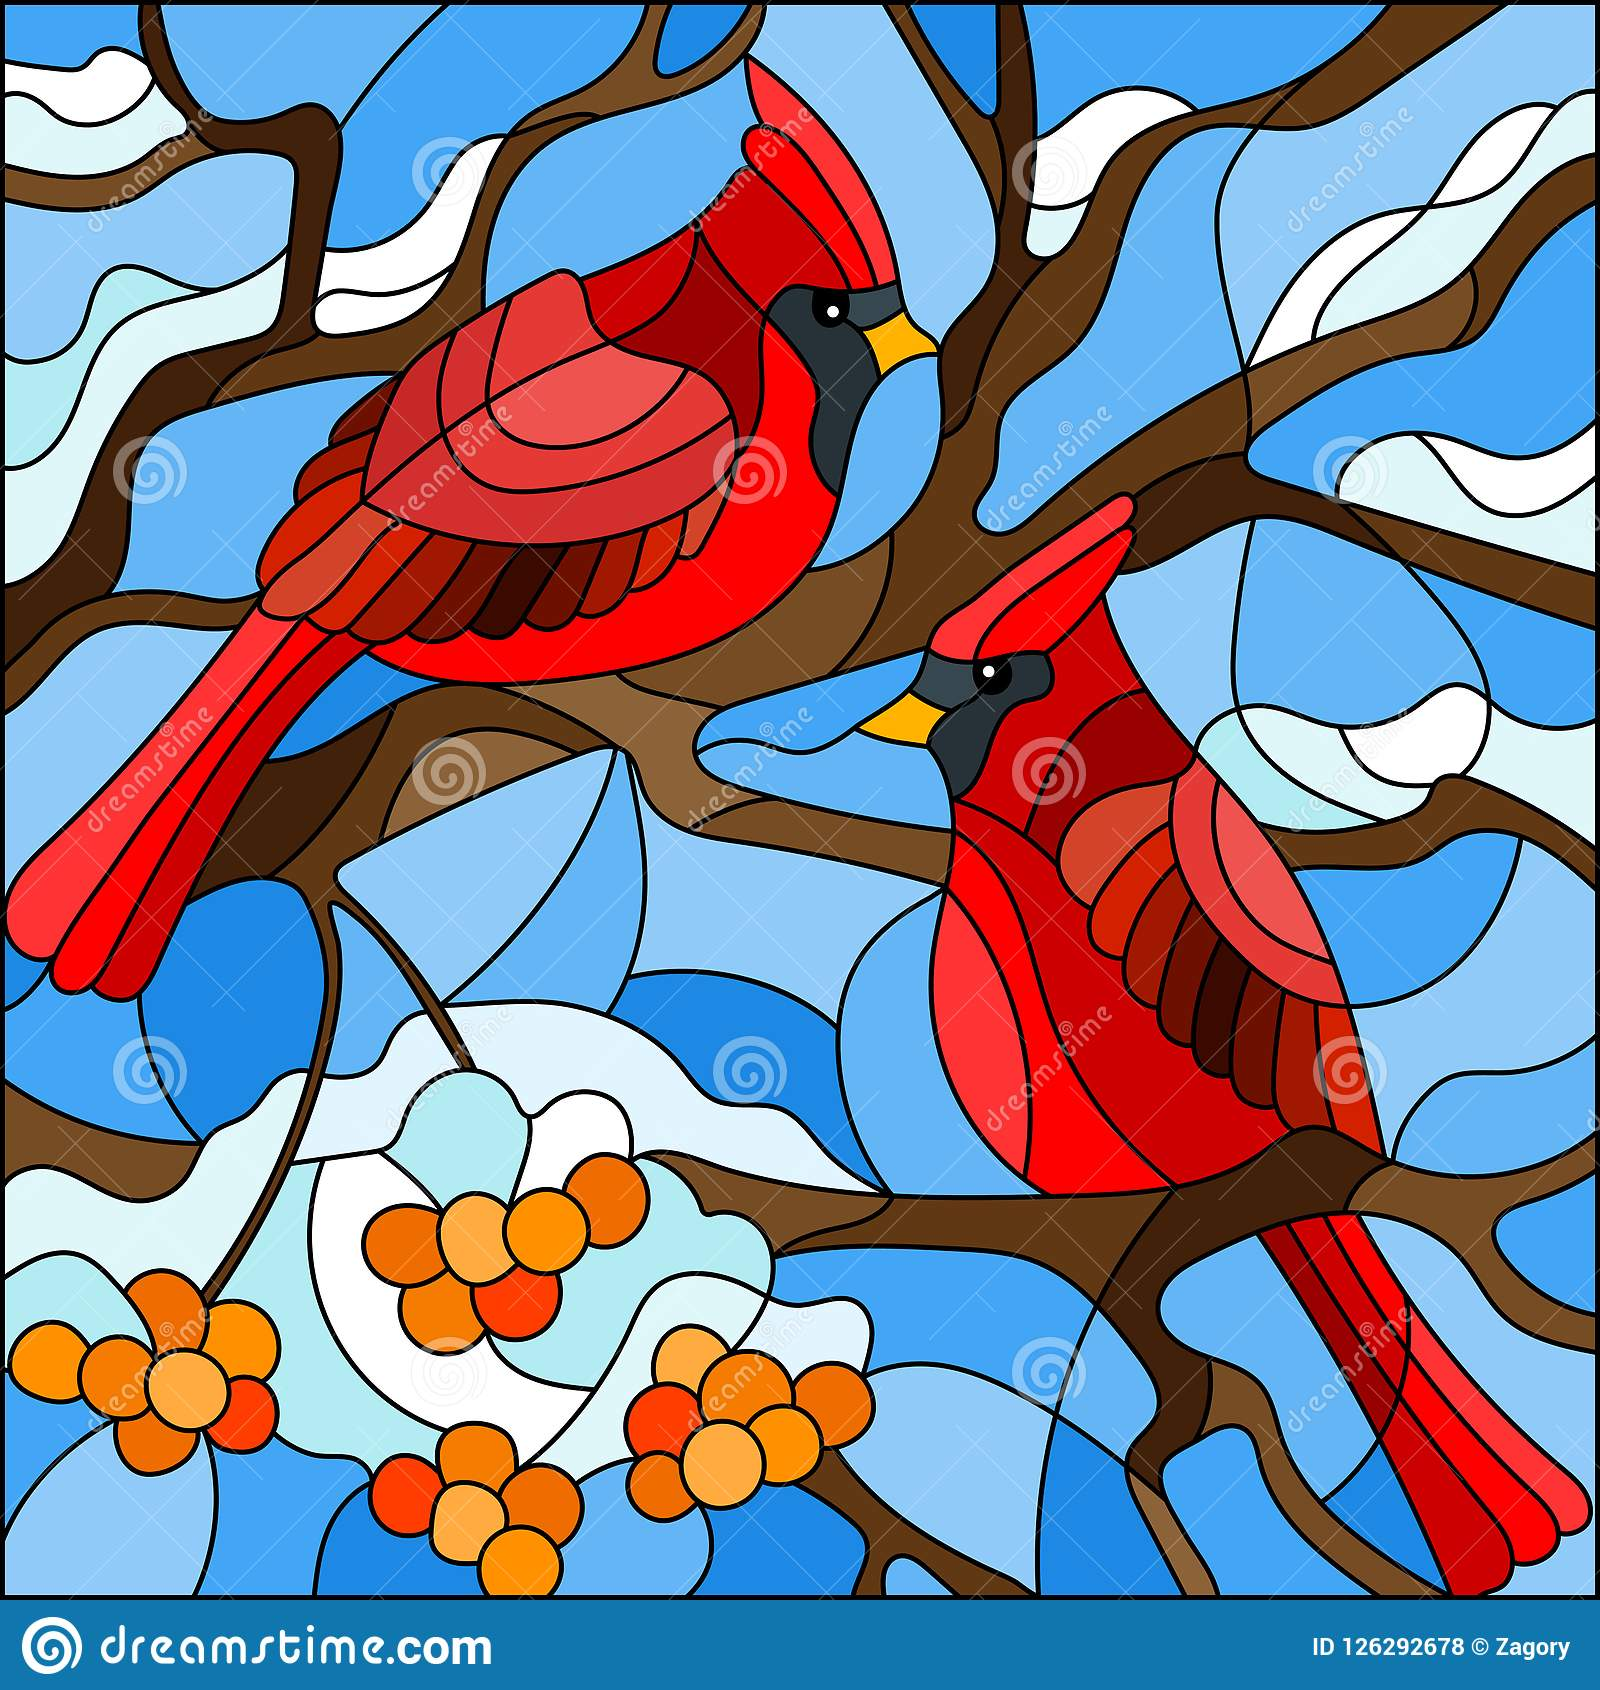 Stained glass illustration , pair of birds cardinals sitting on a branch of mountain ash on a background of sky and no snow